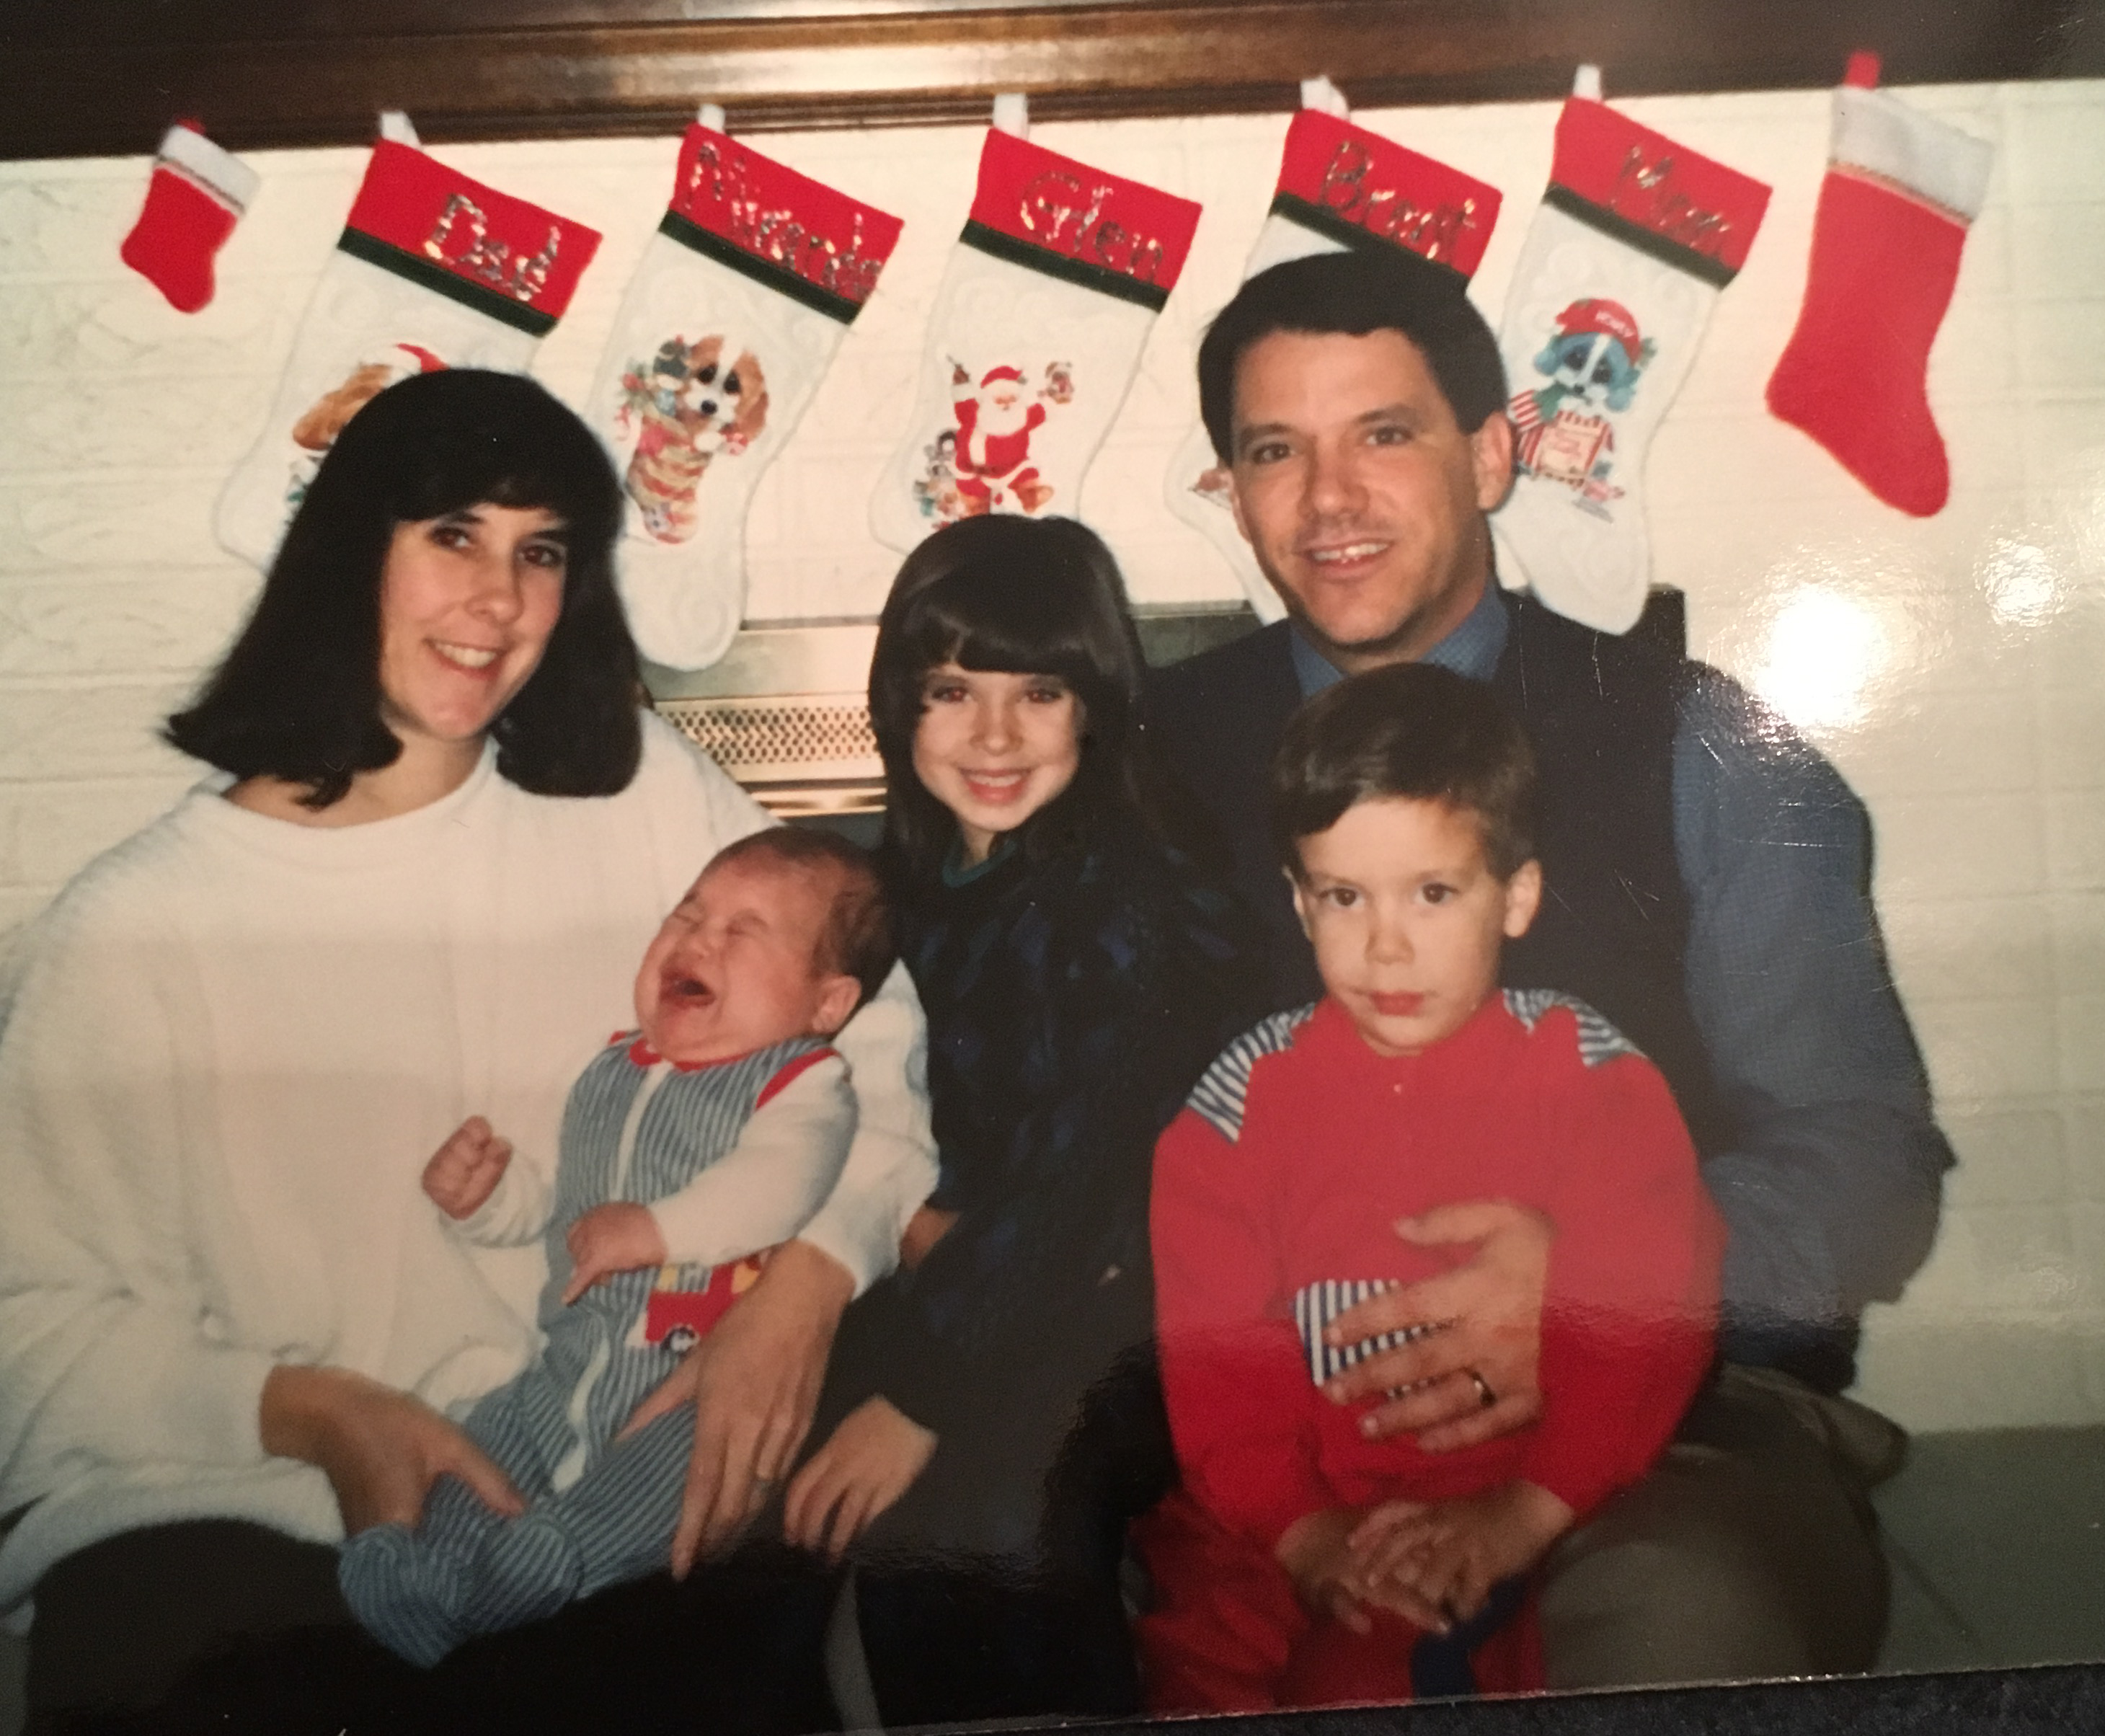 Here is one of our earlier Christmas photos. This is from 1990.